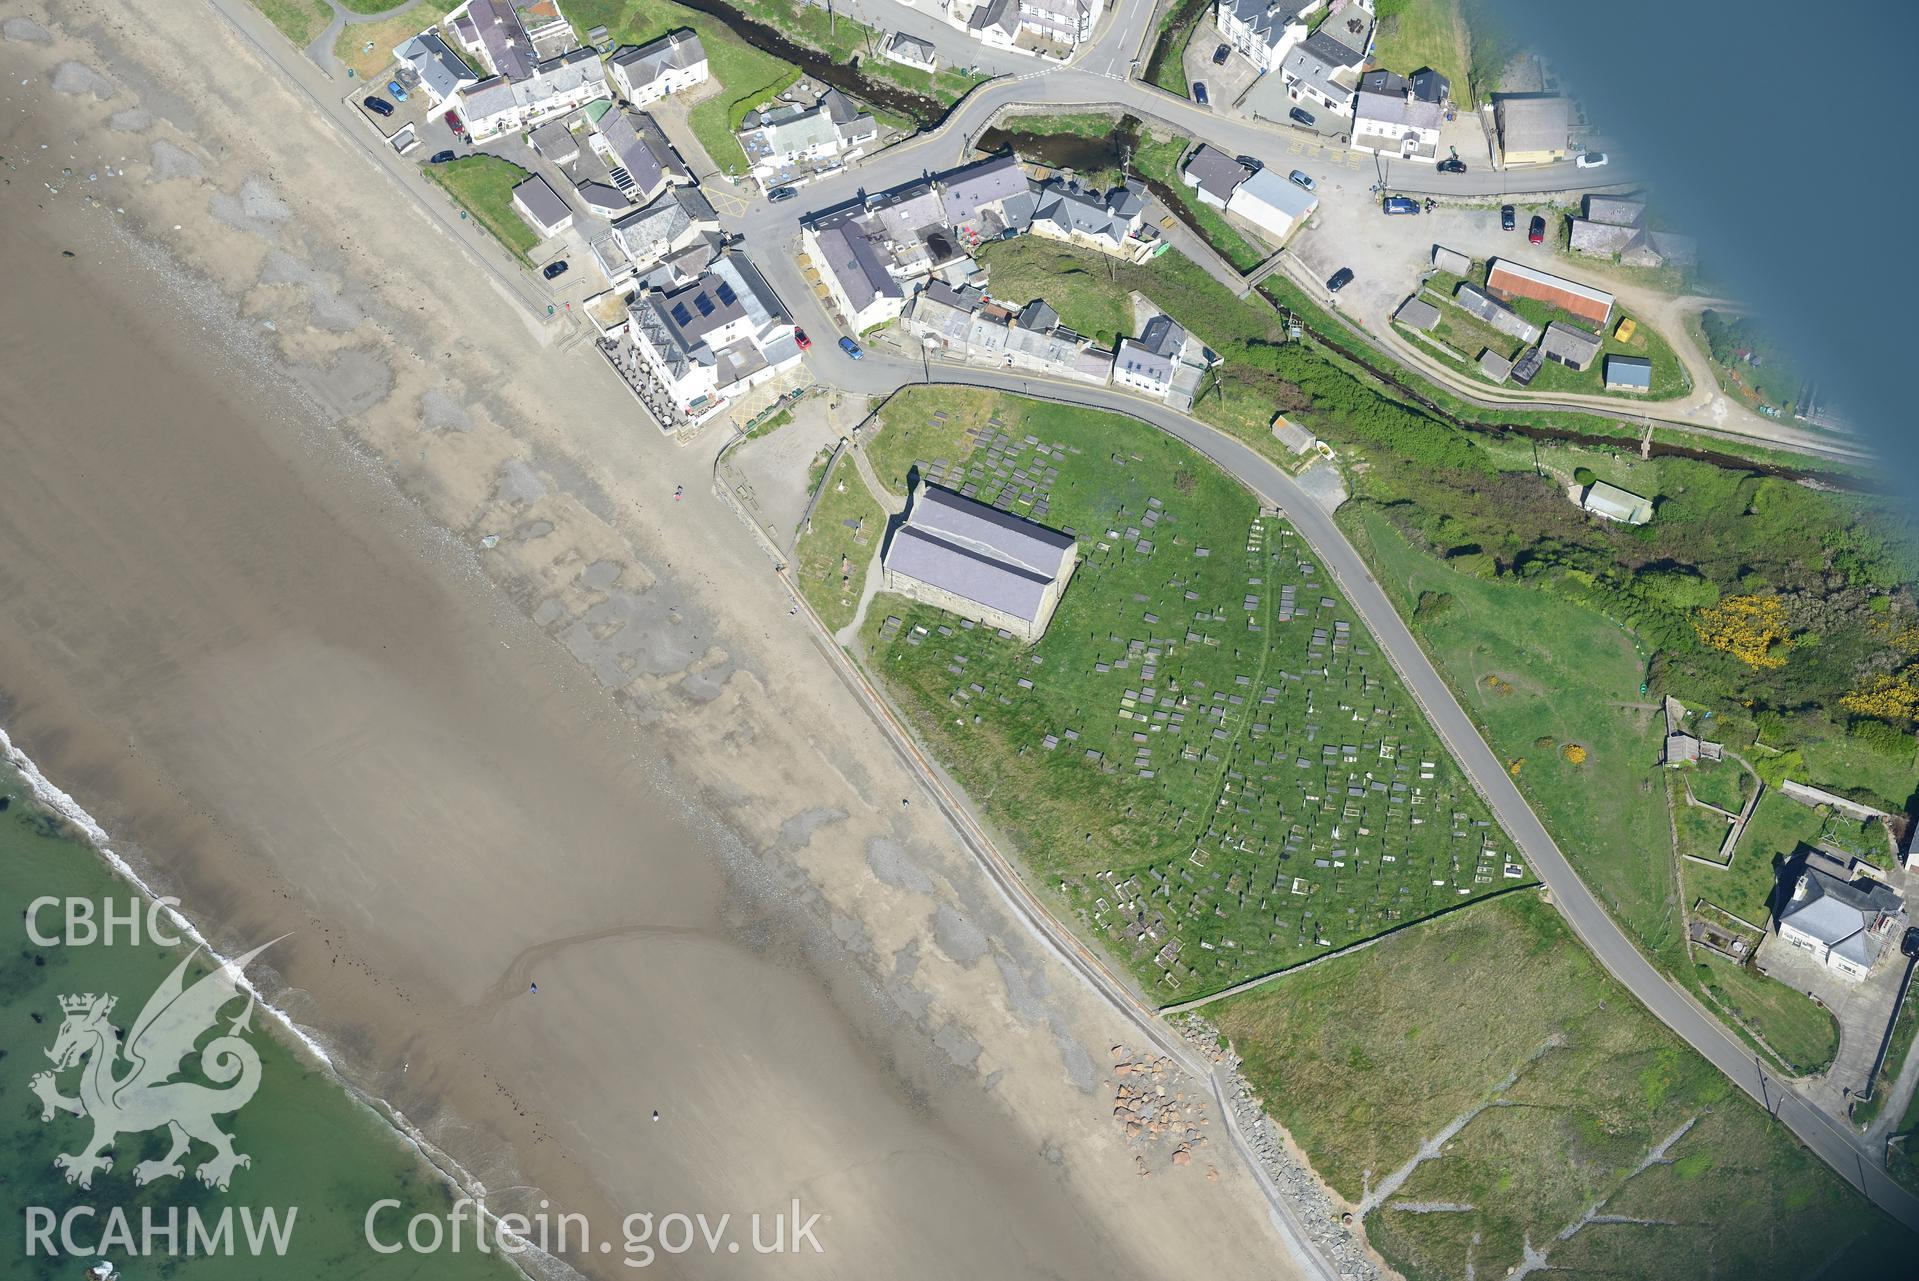 Aerial photography of Aberdaron taken on 3rd May 2017.  Baseline aerial reconnaissance survey for the CHERISH Project. ? Crown: CHERISH PROJECT 2017. Produced with EU funds through the Ireland Wales Co-operation Programme 2014-2020. All material made fre